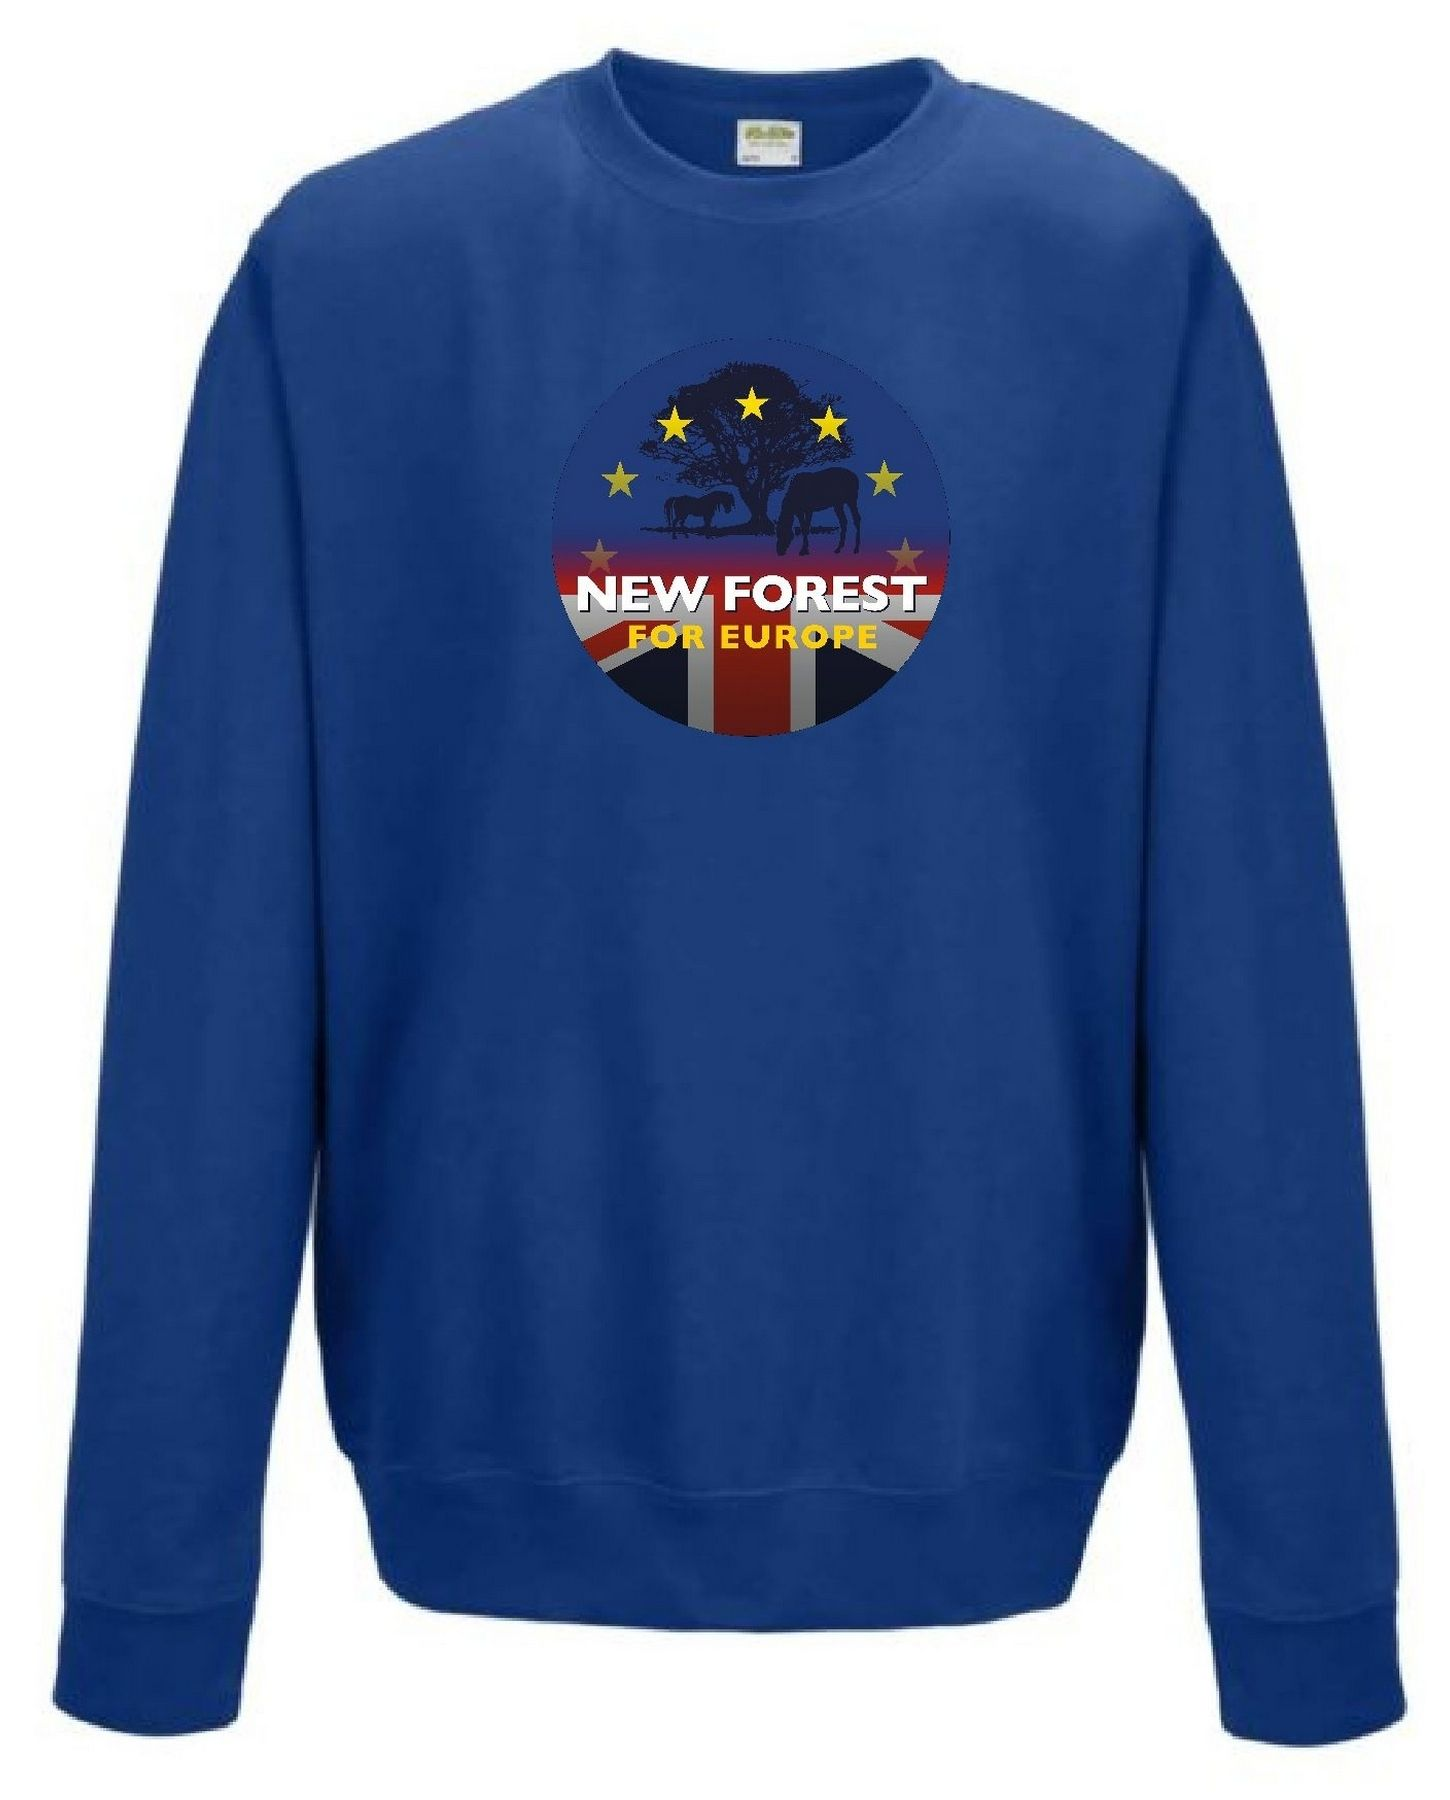 New Forest for Europe – Sweatshirt (Unisex)